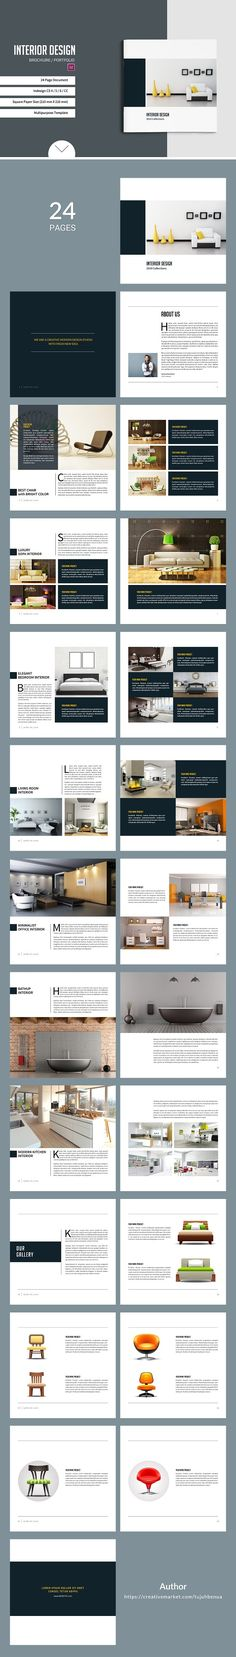 29 Best Ideas for design layout brochure inspiration Web Design, Layout Design, Flyer Design, Flyer Layout, Brochure Layout, Brochure Template, Brochure Ideas, Free Brochure, Digital Illustration